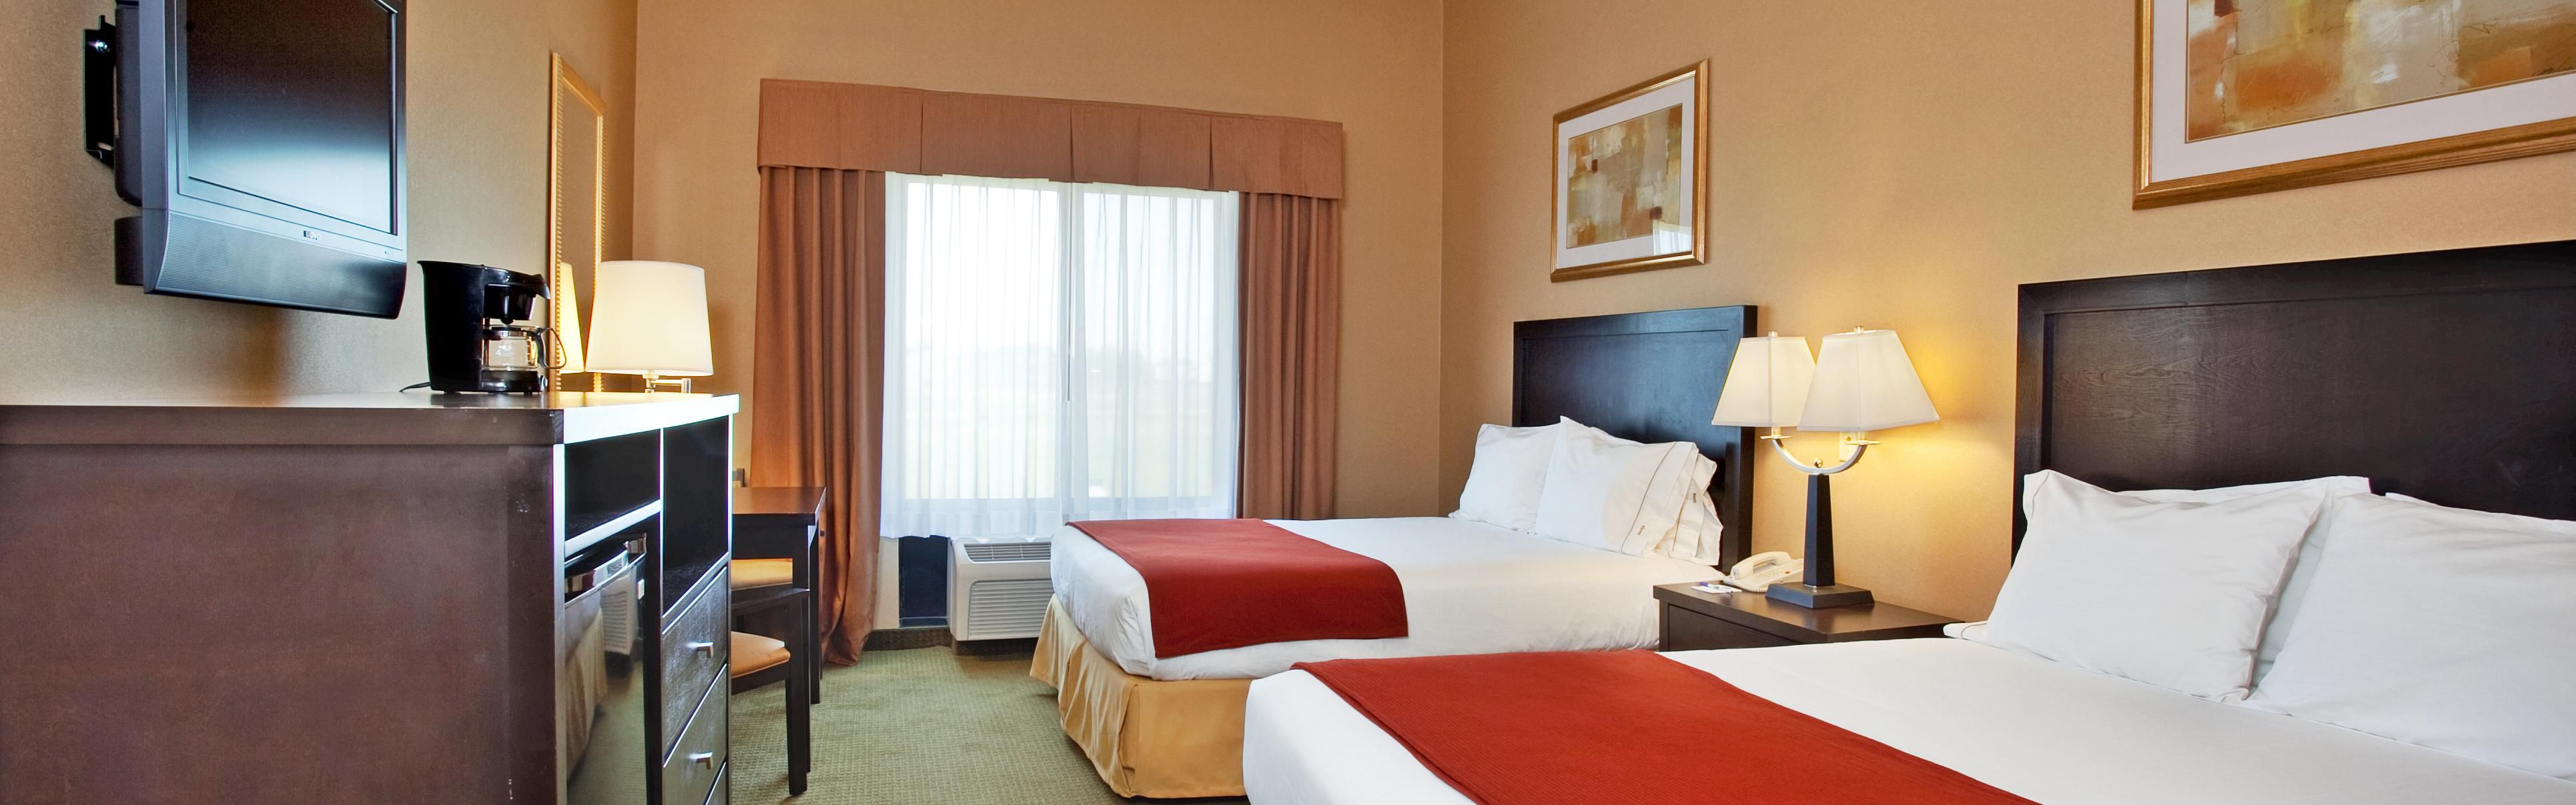 Holiday Inn Express & Suites Goodland image 1